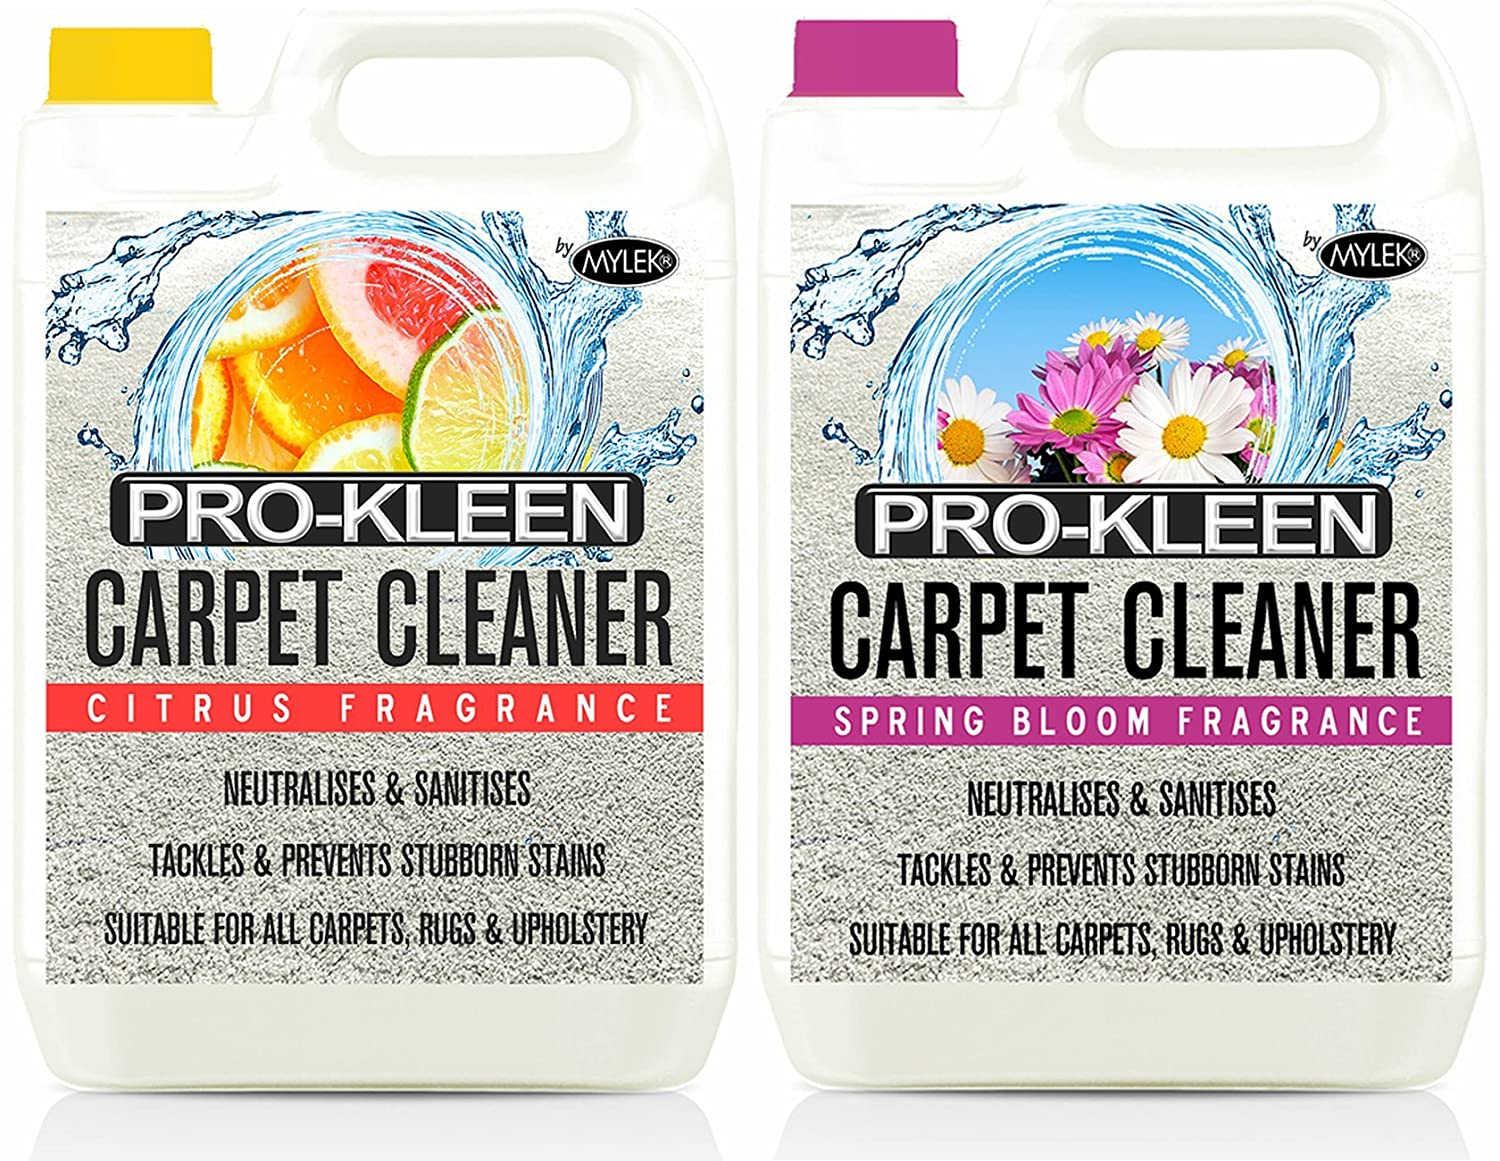 10L of Pro-Kleen x Mylek Ultima+ Professional Carpet & Upholstery Shampoo - Citrus & Spring Bloom Fragrance - High Concentrate Cleaning Solution - Suitable For All Machines MYLEK ULTIMA +